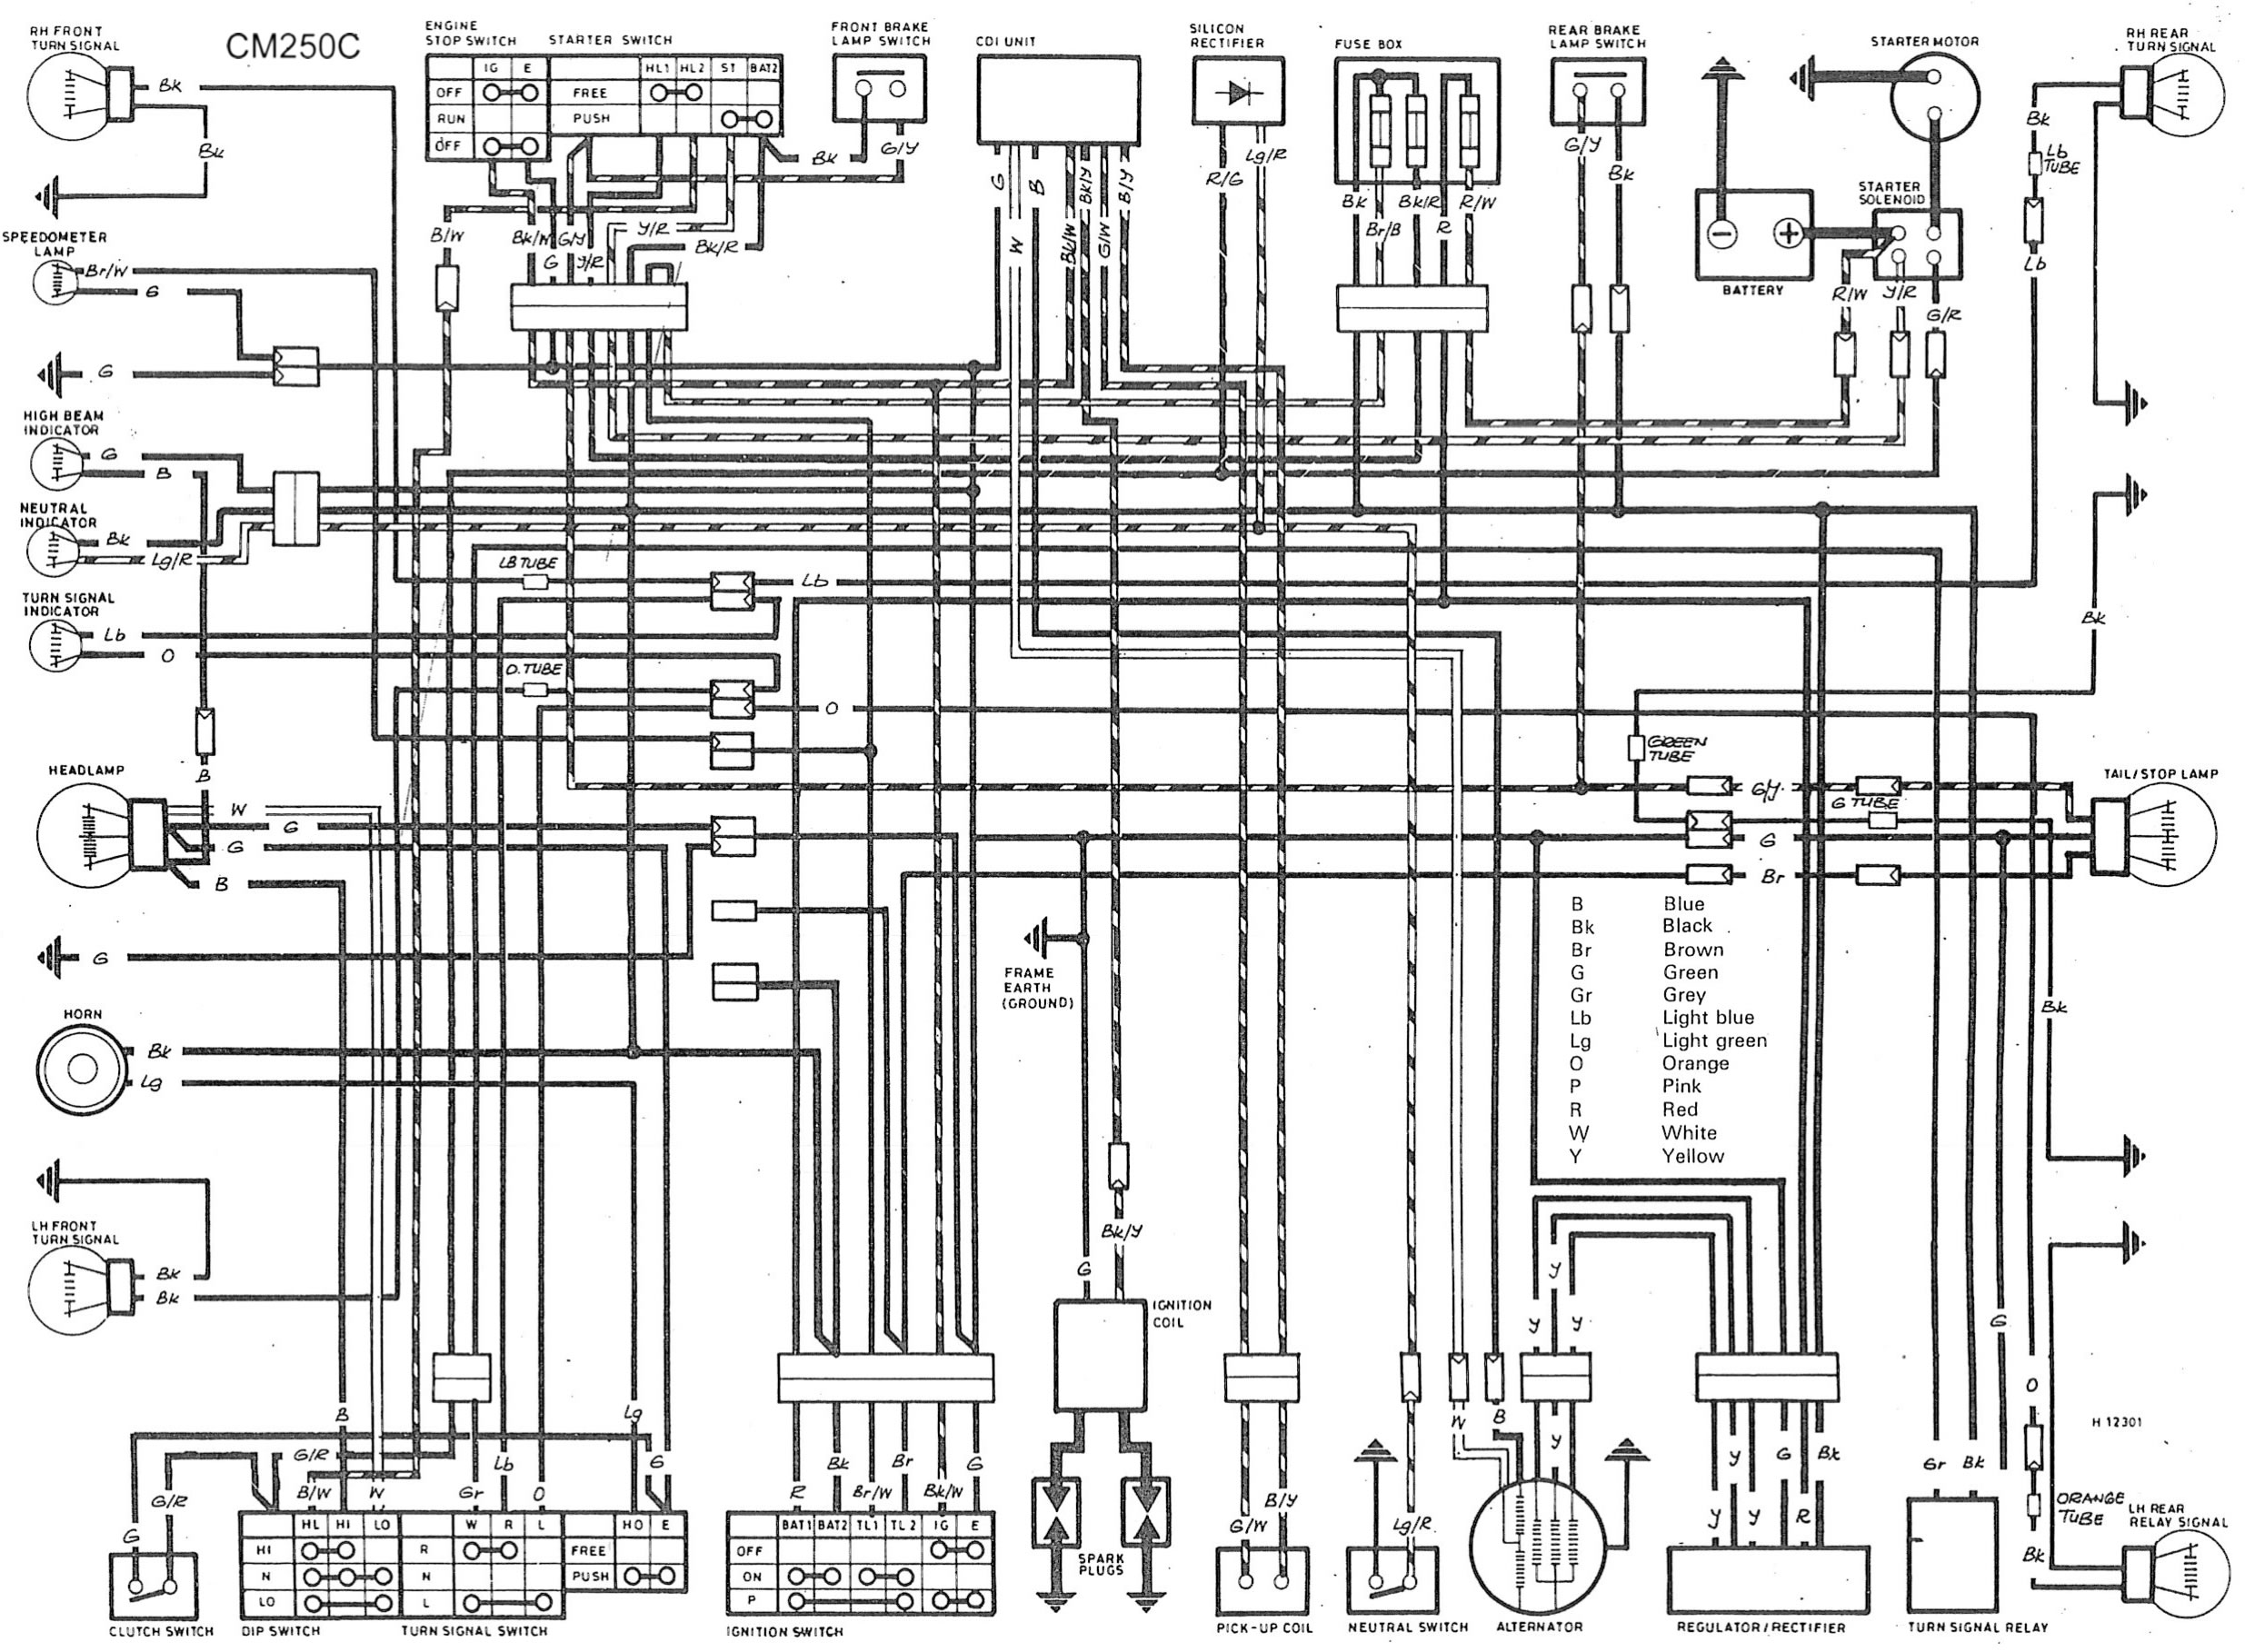 wirediagram cm wiring diagram cm hoist wiring diagram \u2022 wiring diagrams j 1986 honda rebel 250 wiring diagram at bayanpartner.co